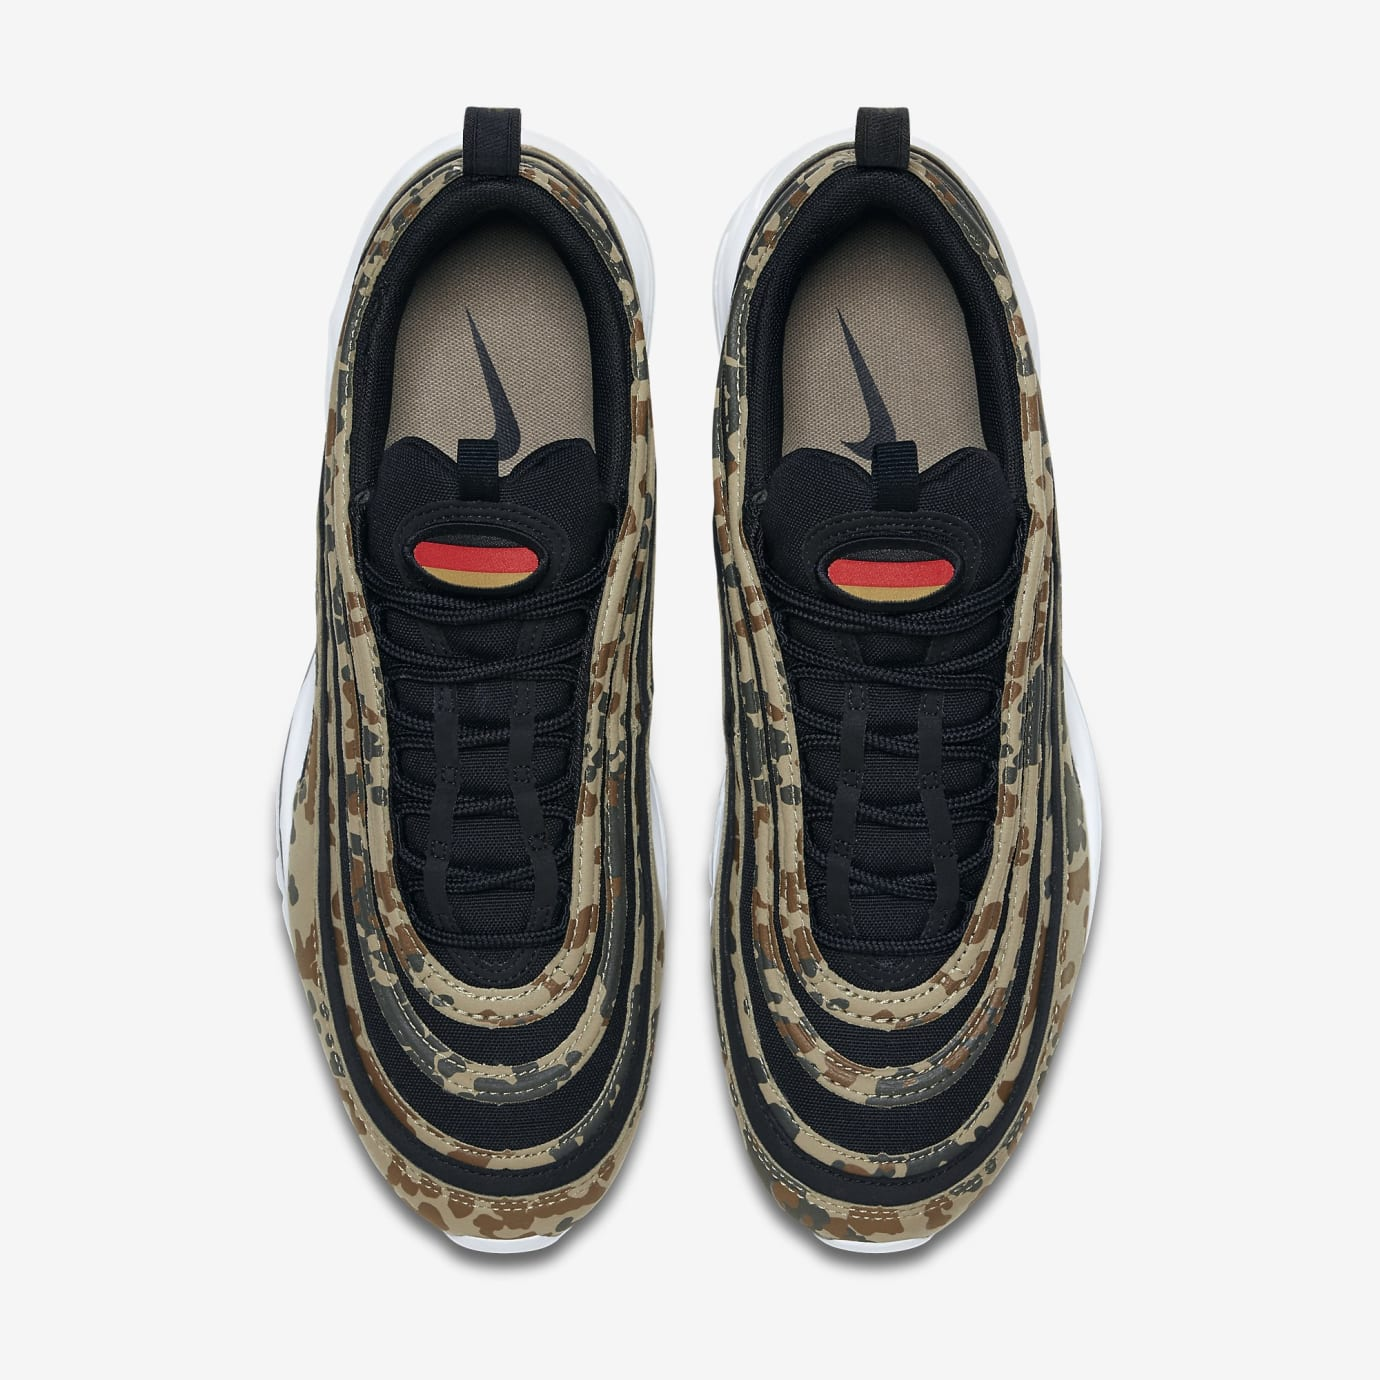 Nike Air Max 97 'Country Camo' Germany AJ2614-204 (Top)